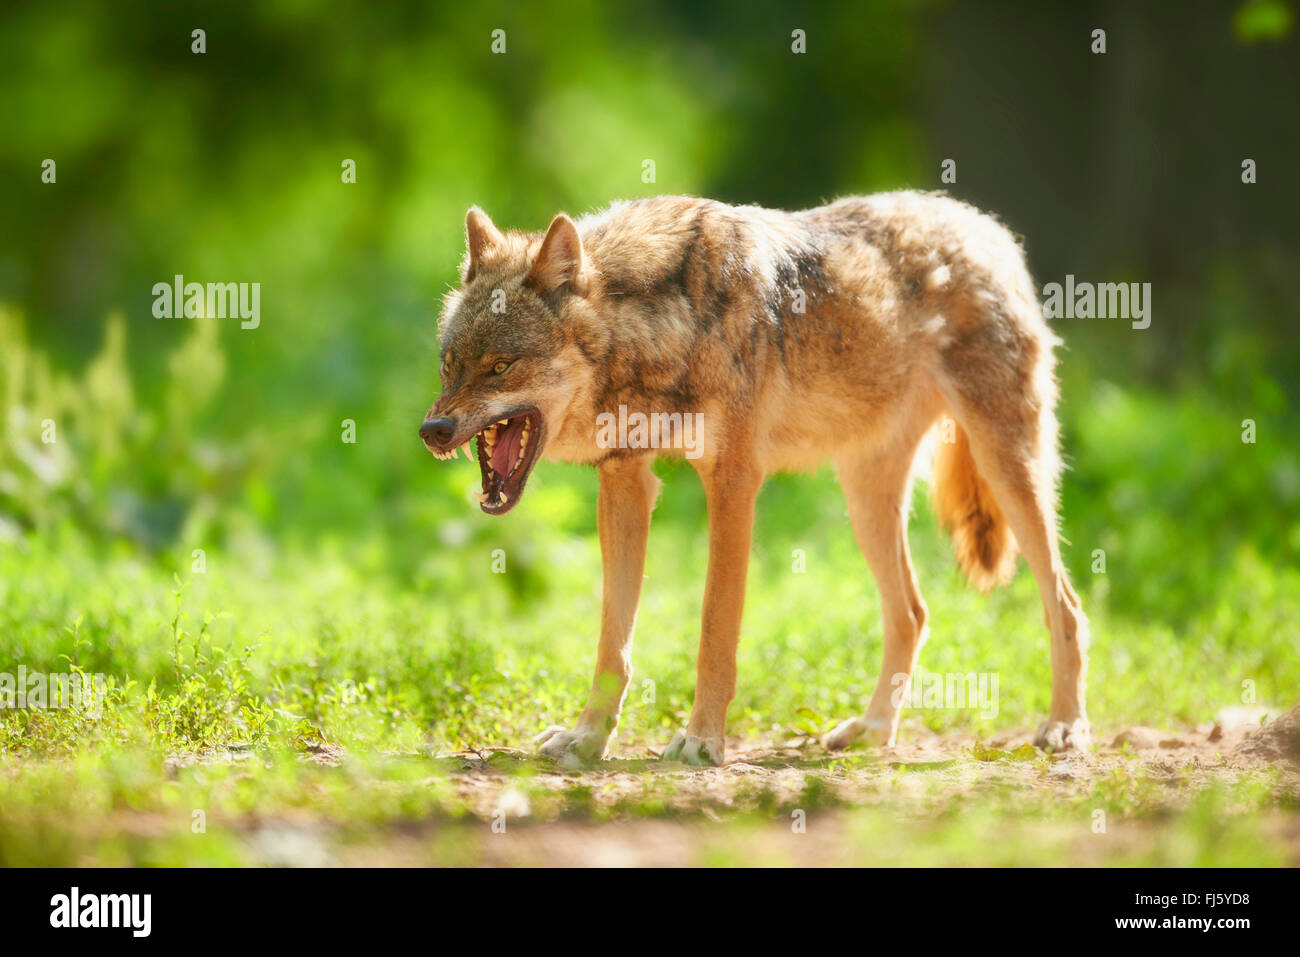 European gray wolf (Canis lupus lupus), wolf displaying teeth, Germany, Bavaria - Stock Image